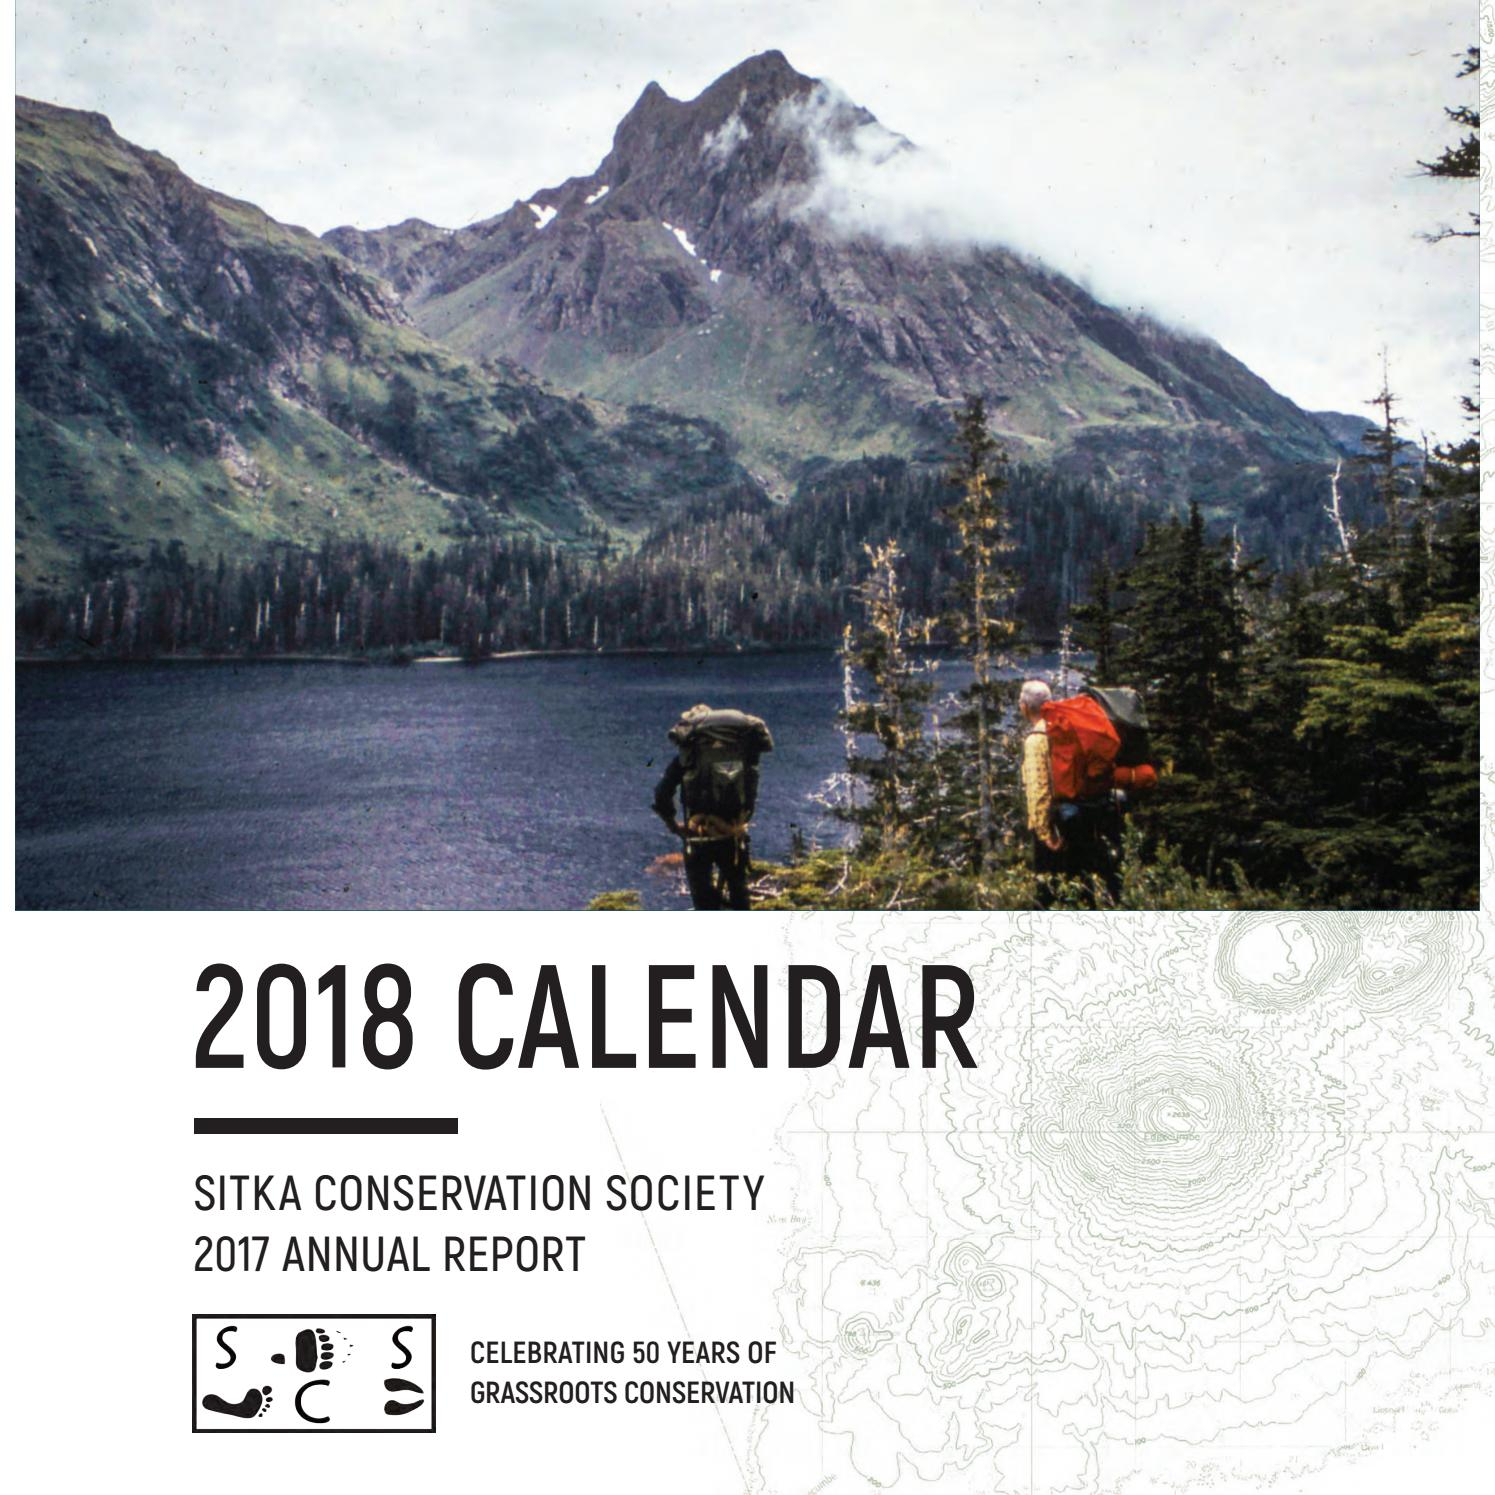 Scs 2018 Calendar By Sitka Conservation Society  Issuu pertaining to B Gale Wilson Calendar